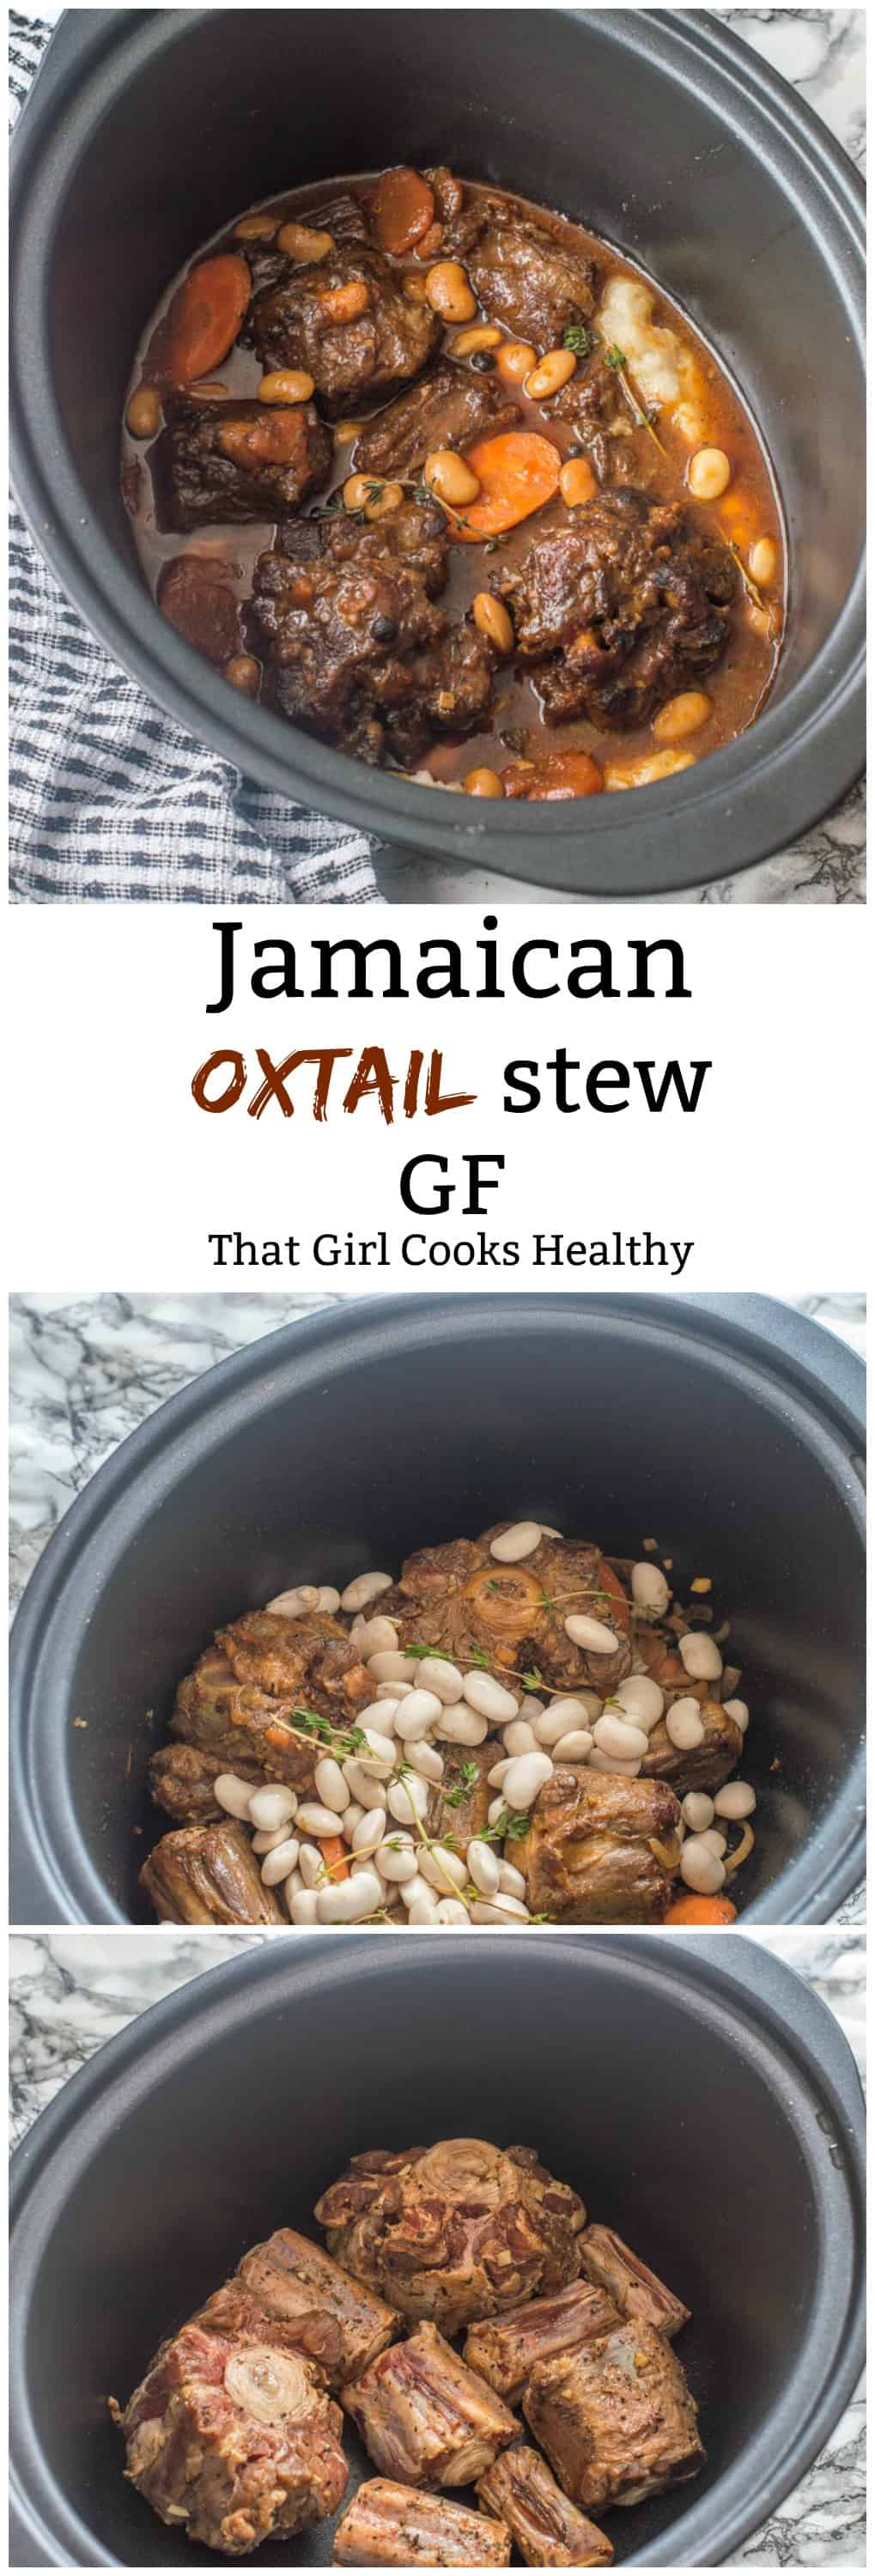 Jamaican oxtail stew is hearty, delicious and made in a slow cooker